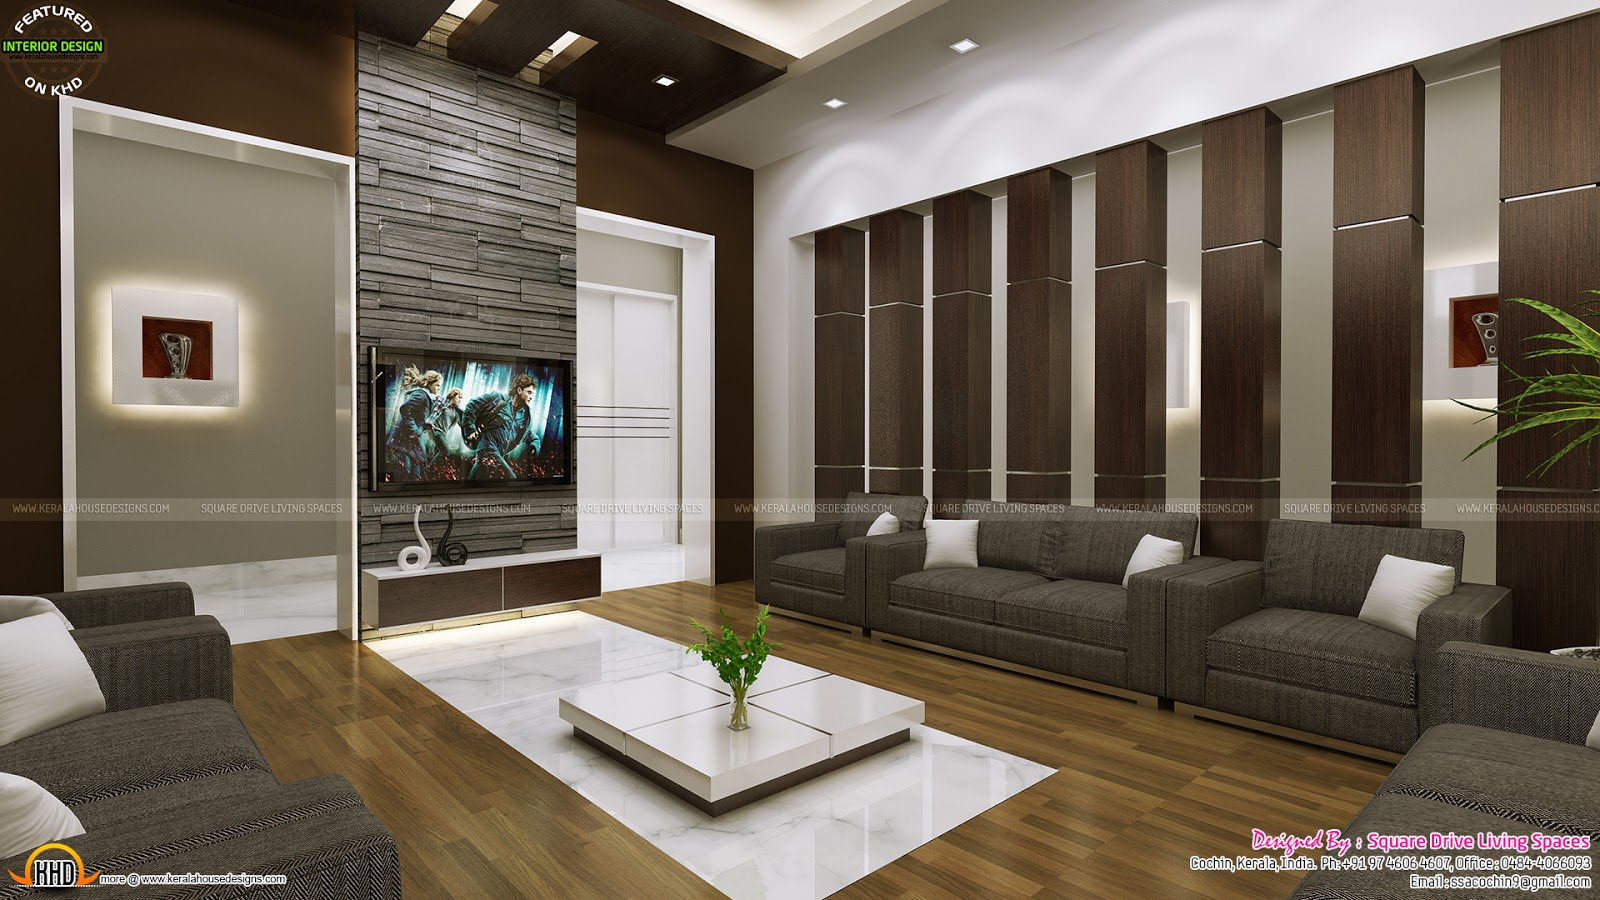 Attractive home interior ideas kerala home design and - Room interior designs ...